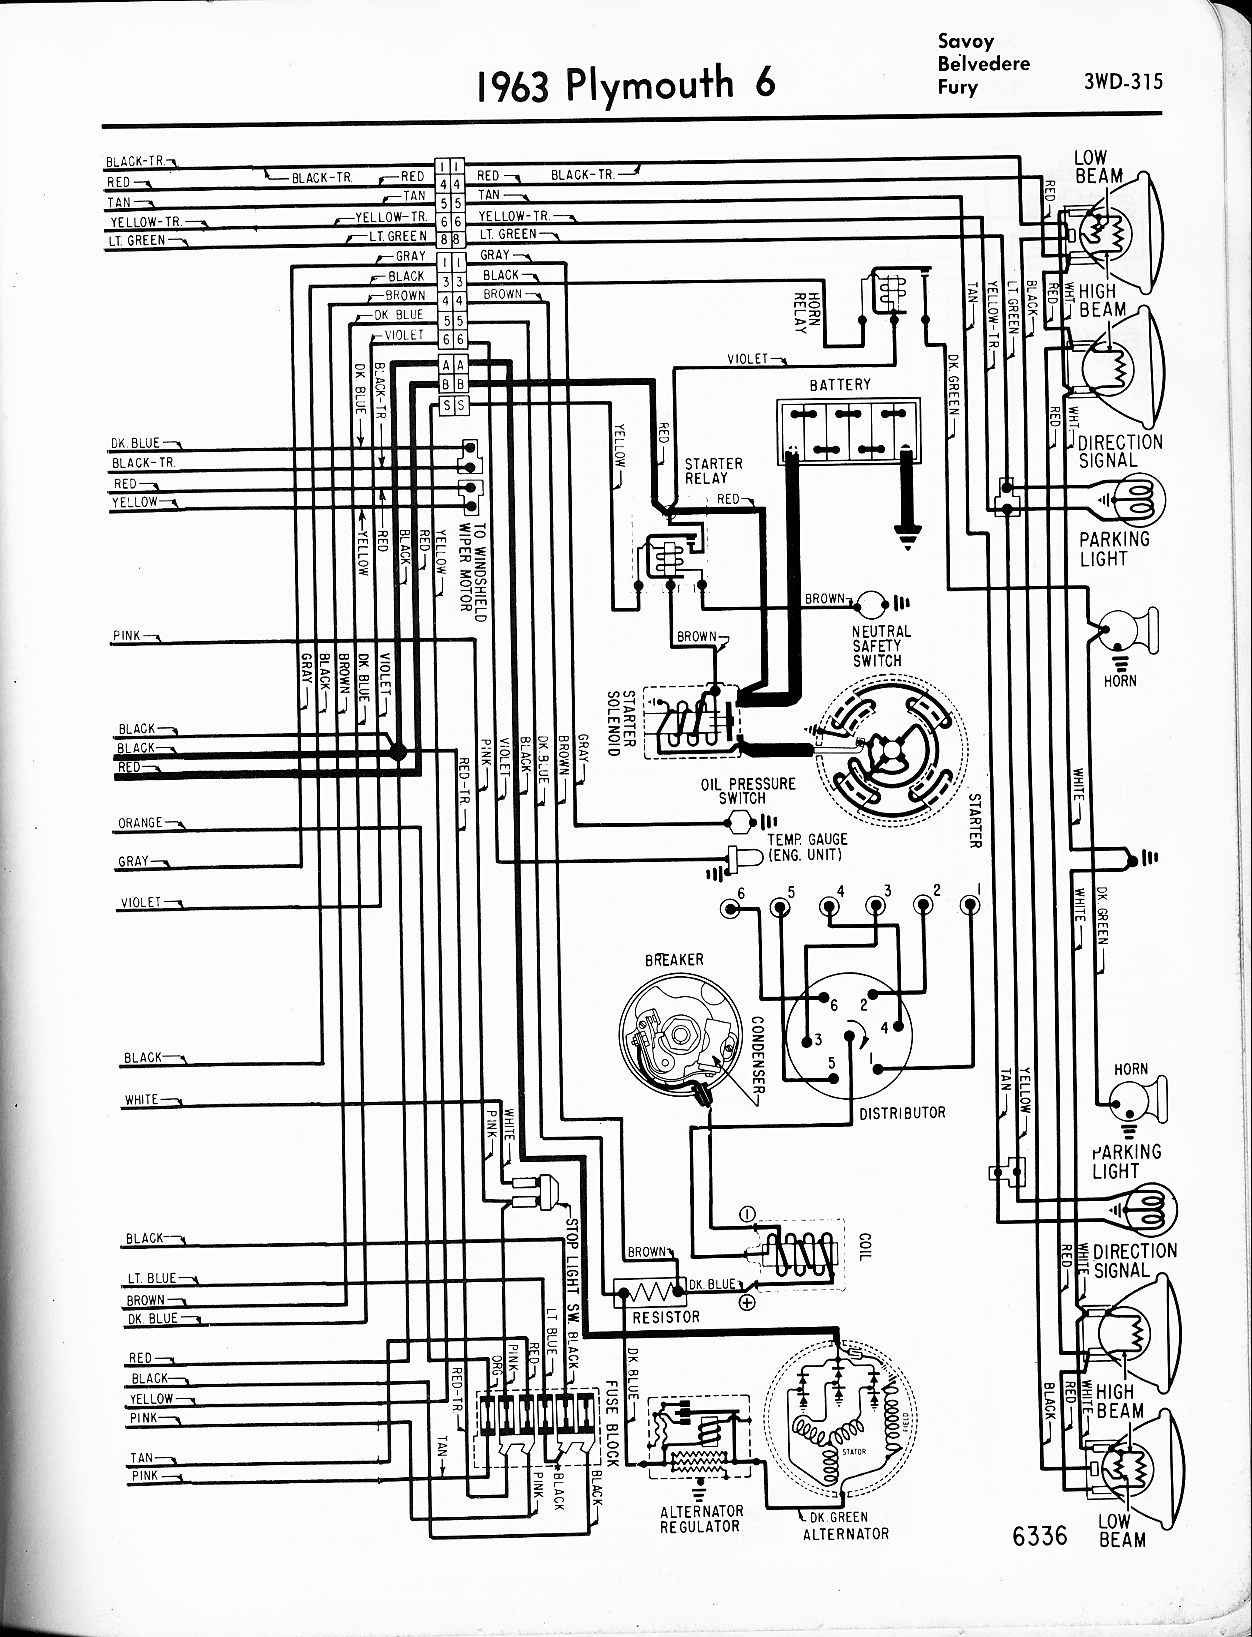 1967 plymouth fury engine diagram user guide of wiring diagram wiring diagram for 1966 fury list of